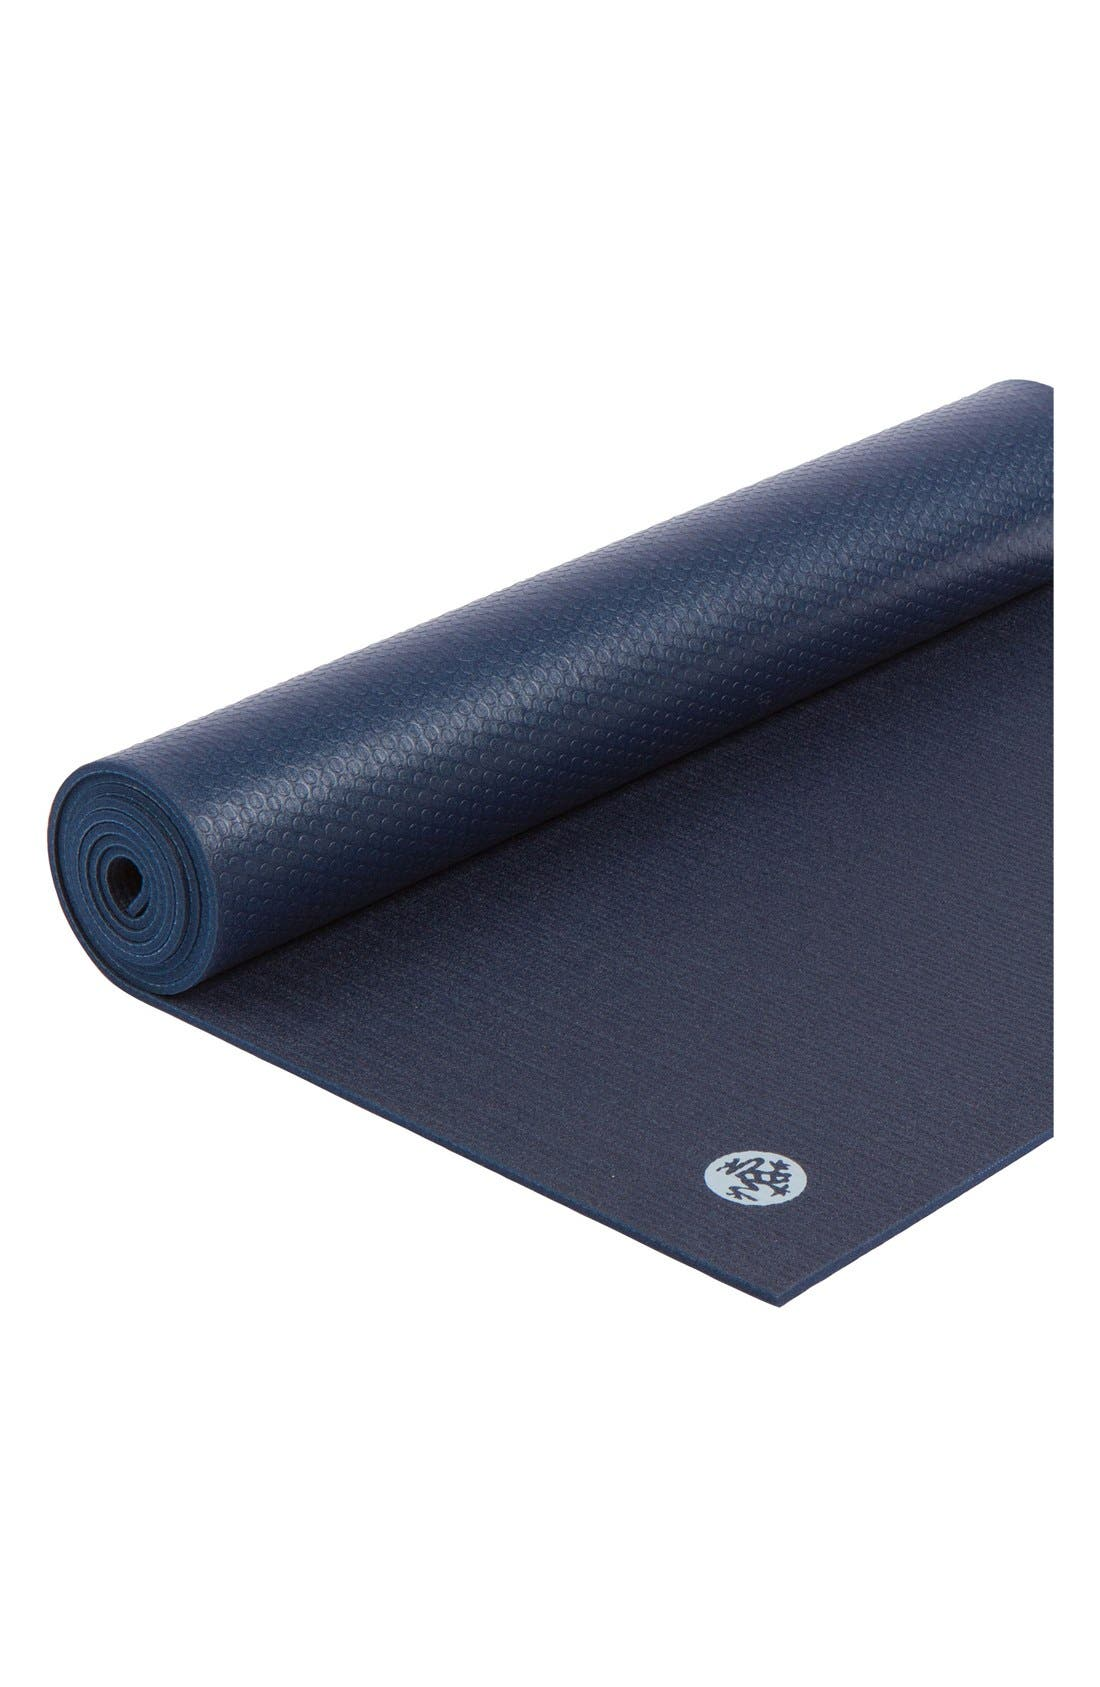 Alternate Image 3  - Manduka 'ProLite' Yoga Mat